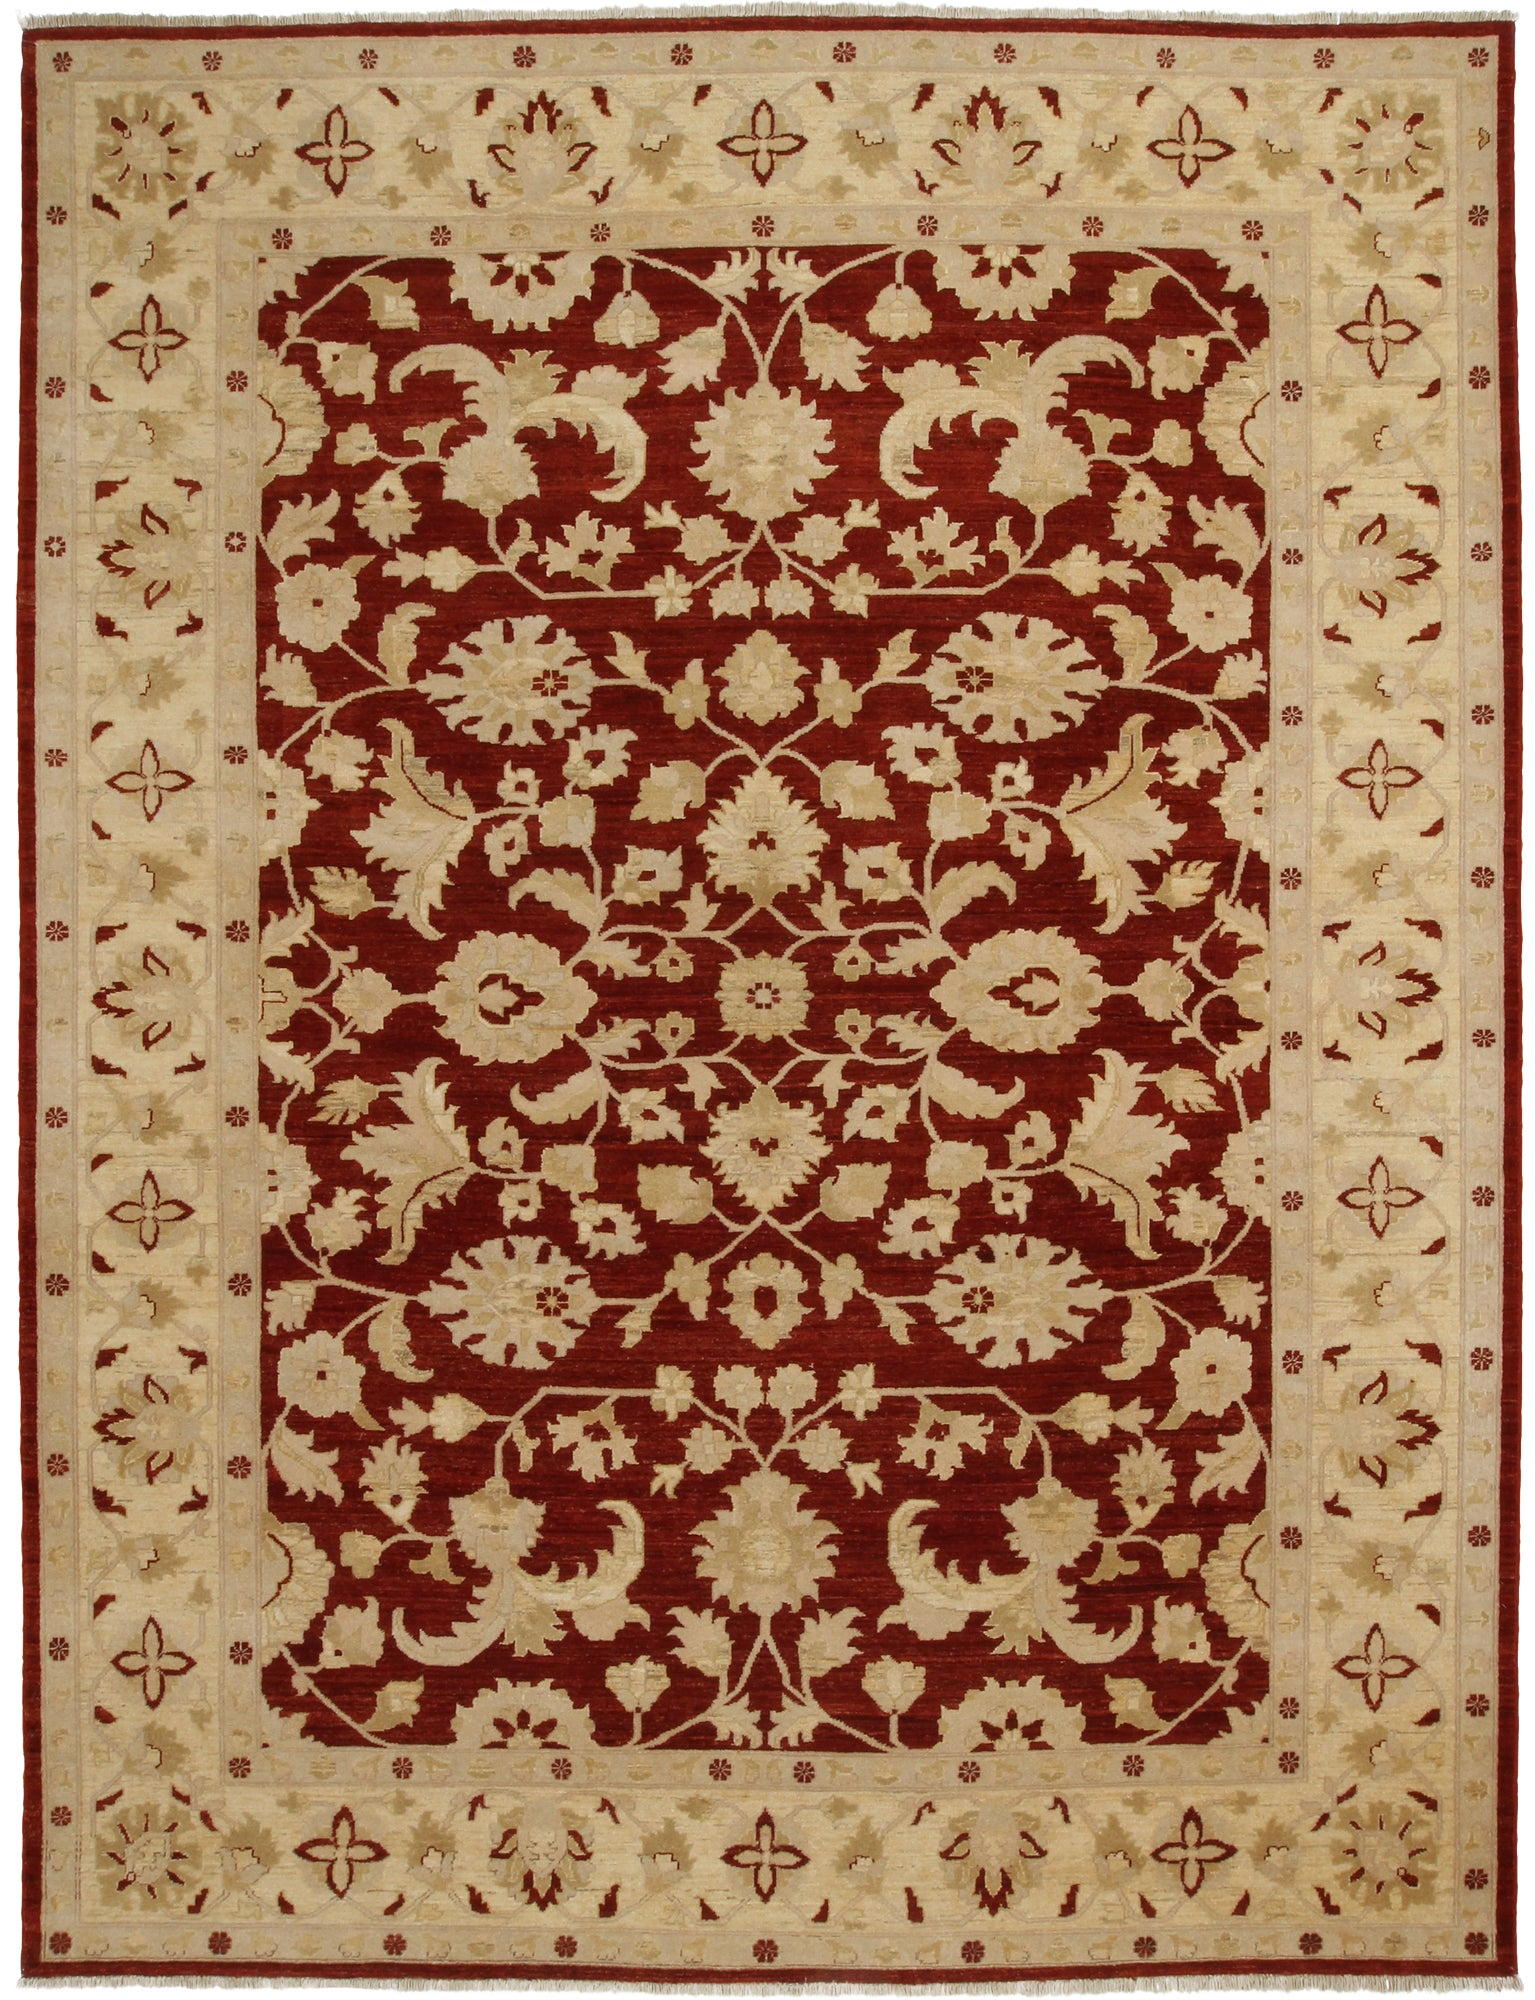 Chobi Rug Red Tan-Turco Persian Rug Company Inc.